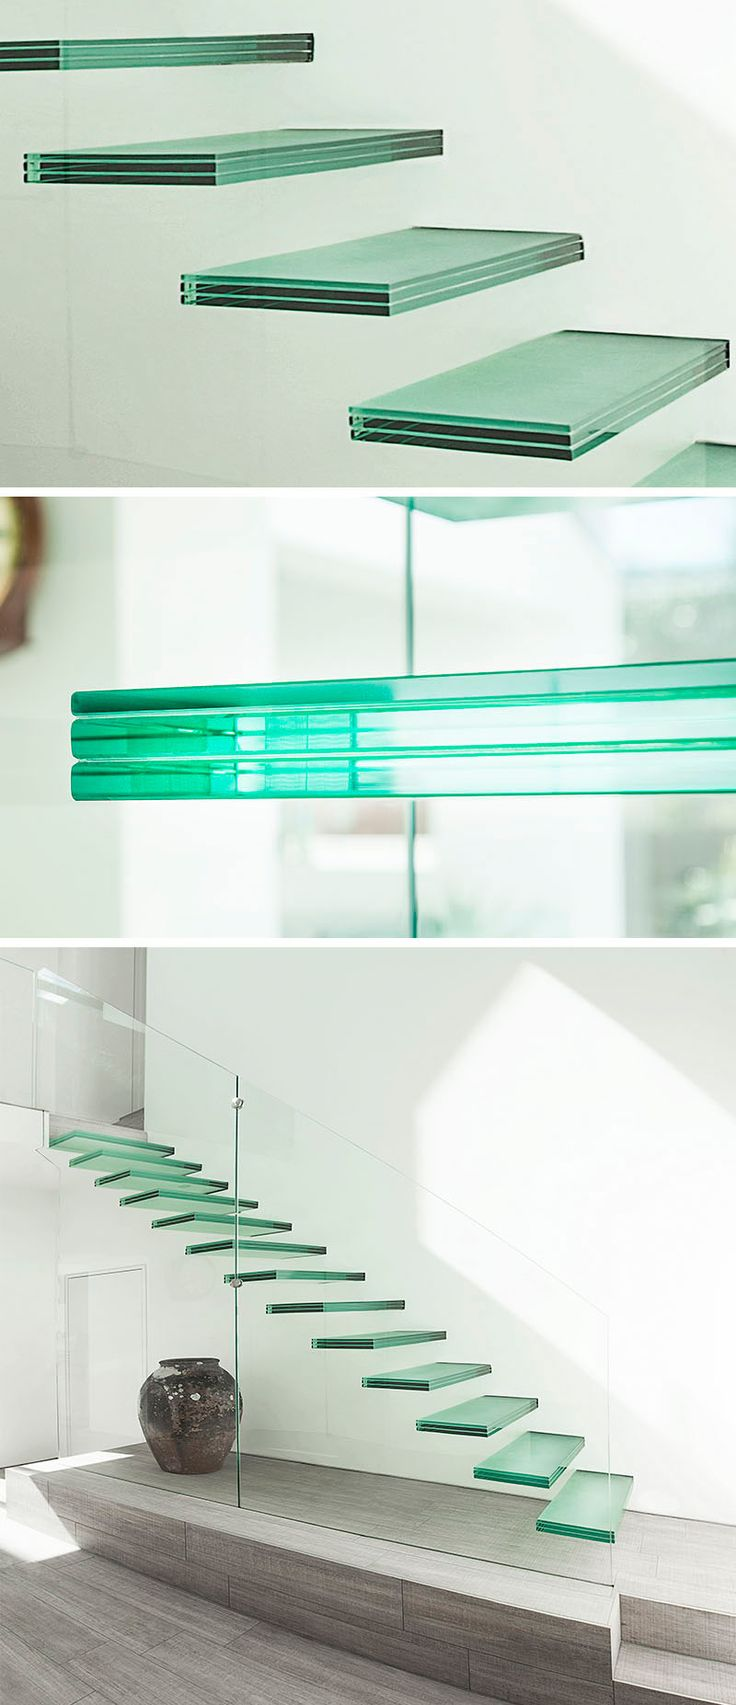 18 Examples Of Stair Details To Inspire You // Each tread on these stairs is made up of three layers of a blue/green glass.